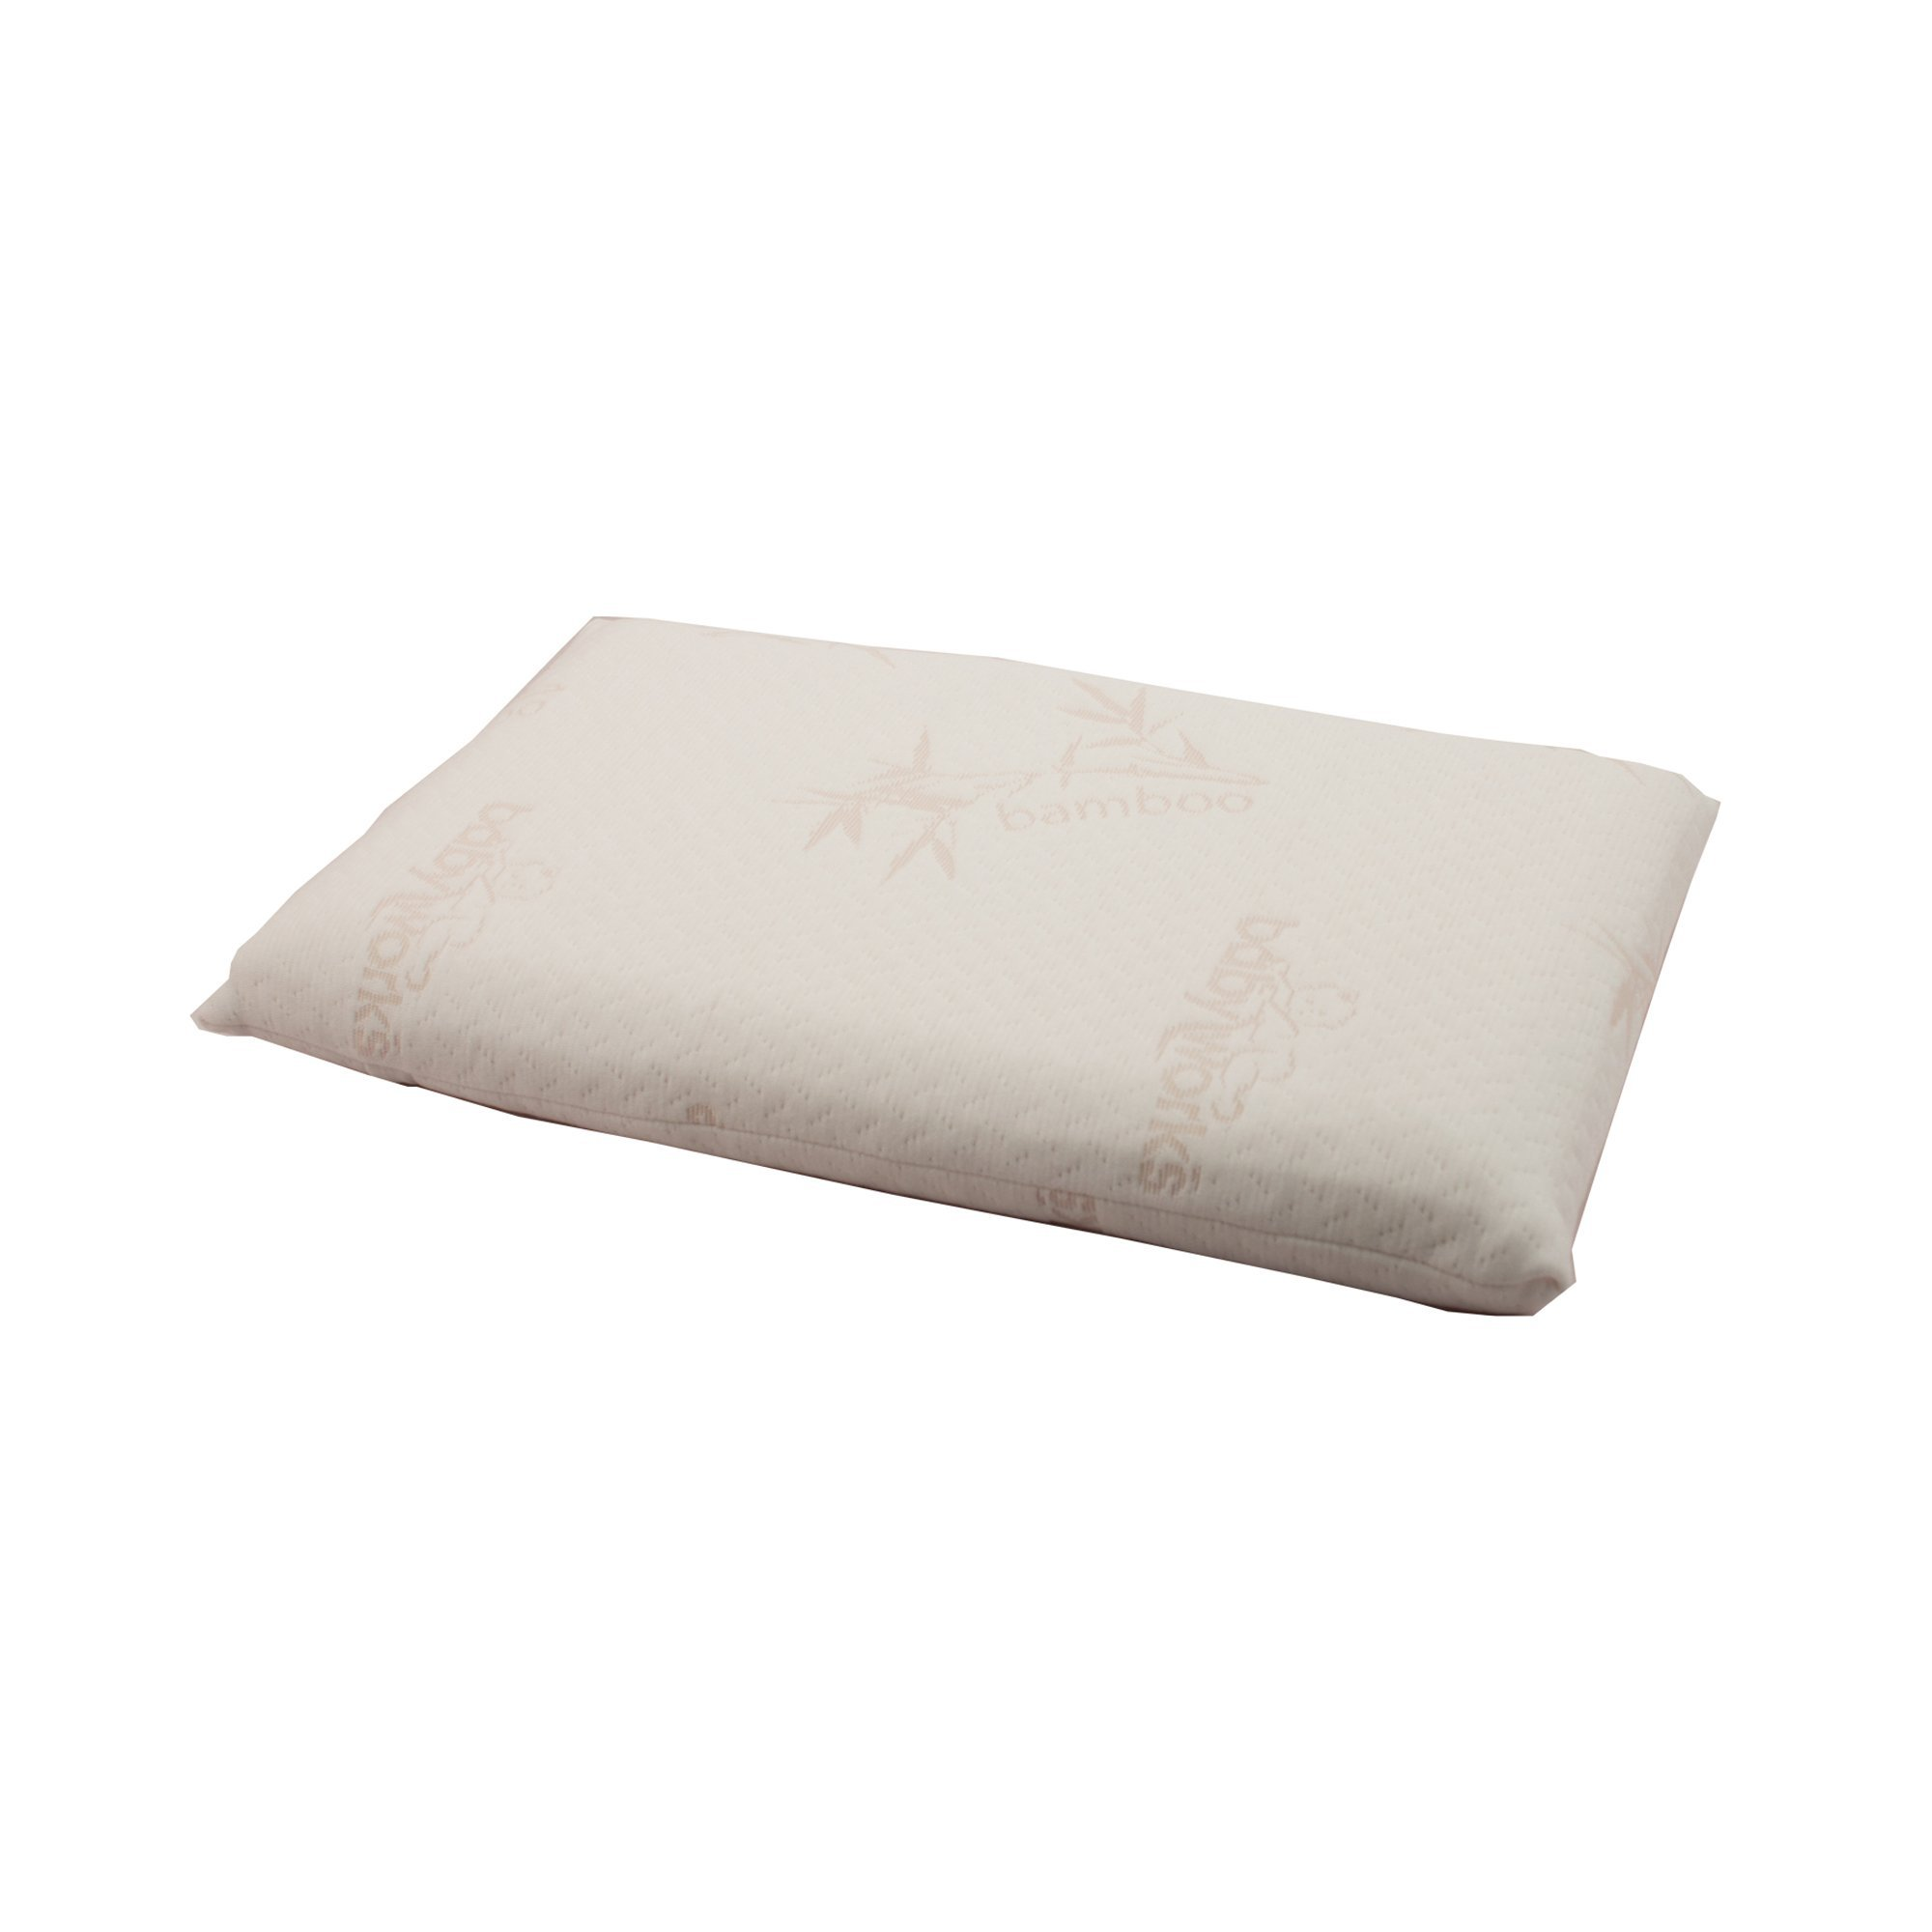 Beanbone Baby Works Toddler Pillow With Bamboo Pillowcase